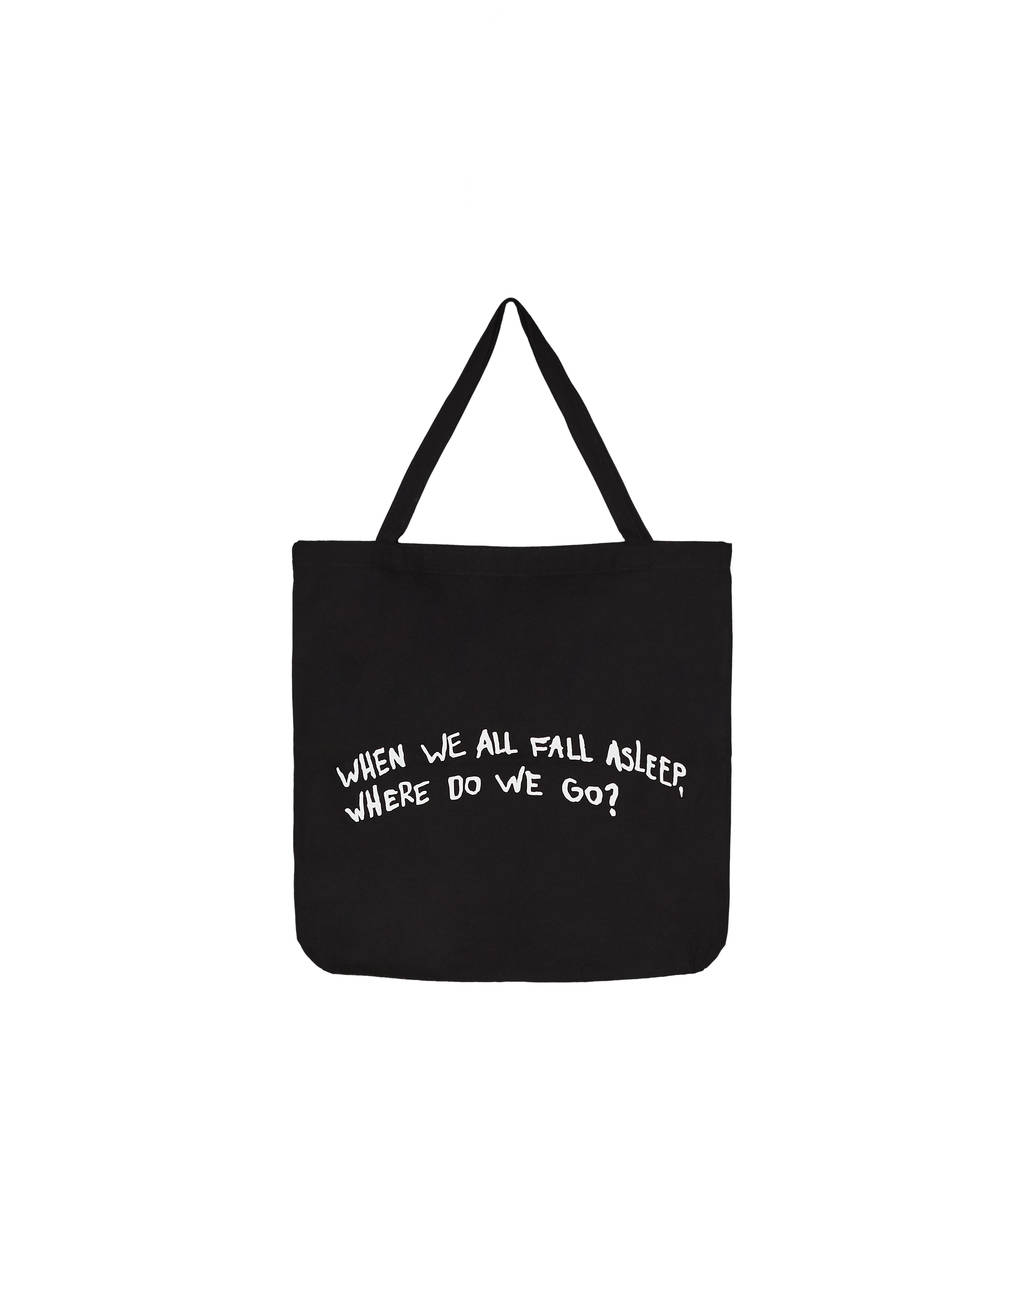 Billie Eilish x Bershka tote bag